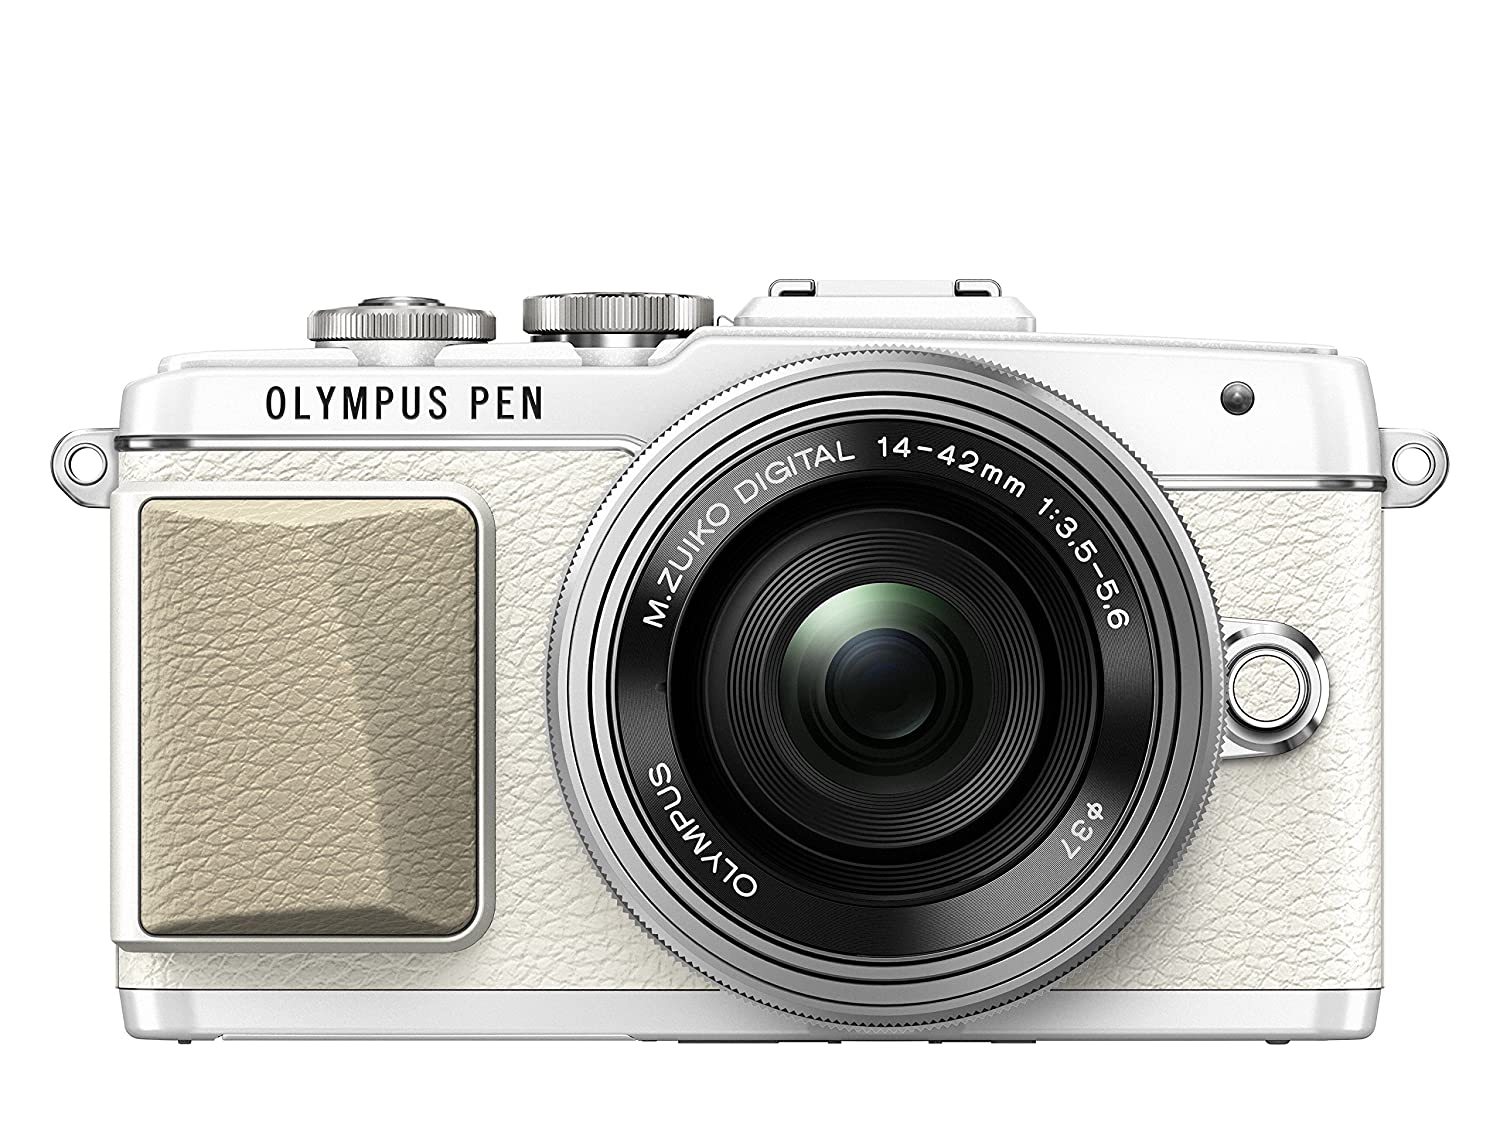 Olympus PEN E-PL7 Camera (White) with M.Zuiko Digital ED 14-42mm EZ Pancake Lens